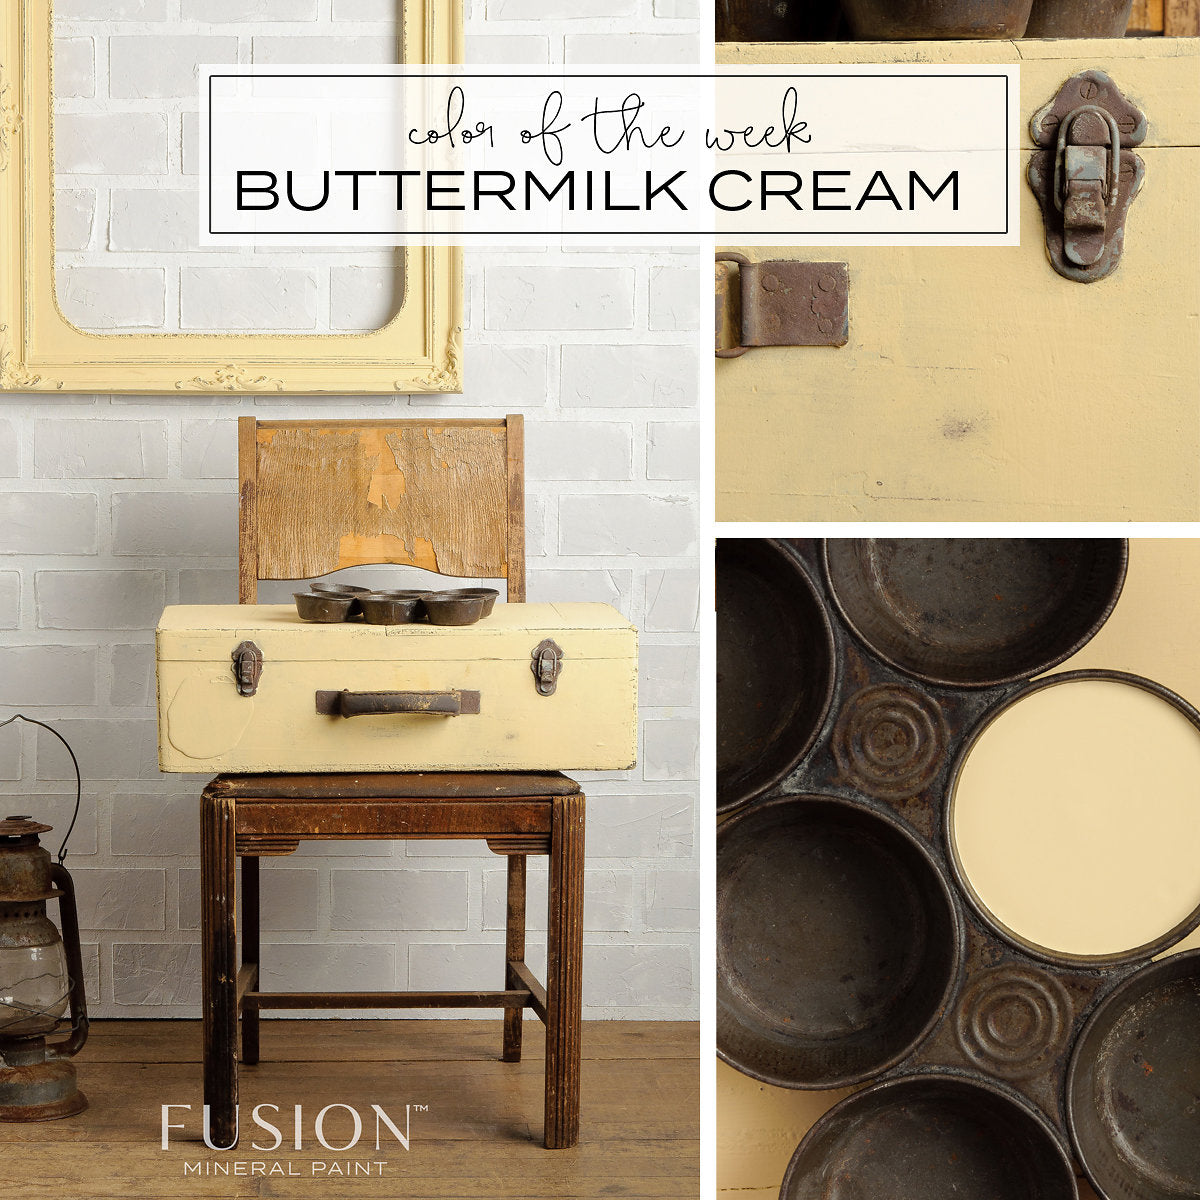 Buttermilk Cream FUSION Mineral Paint